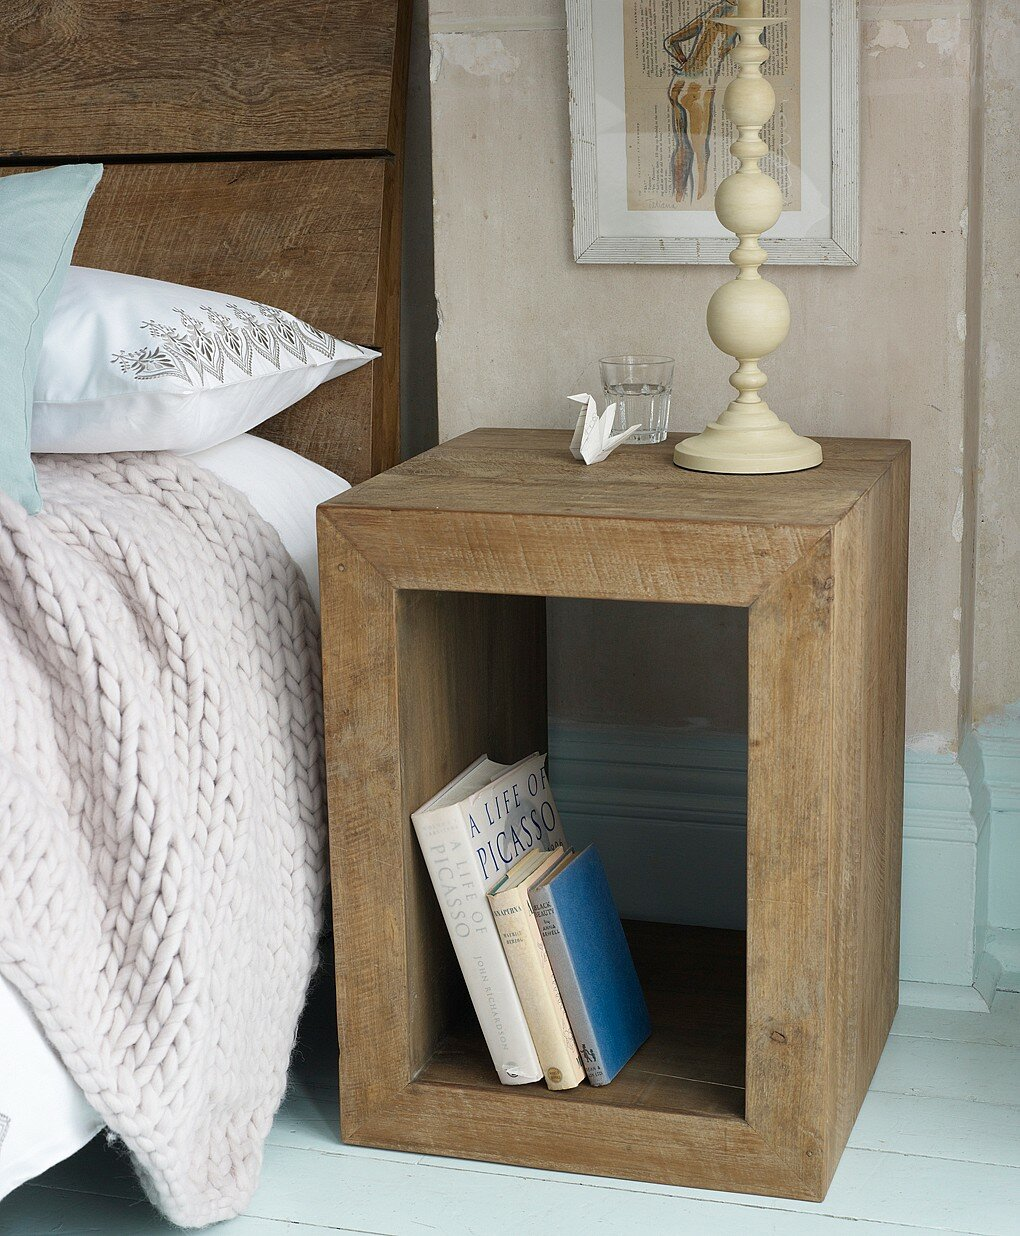 17 inspiring bedside table designs mostbeautifulthings Night table ideas